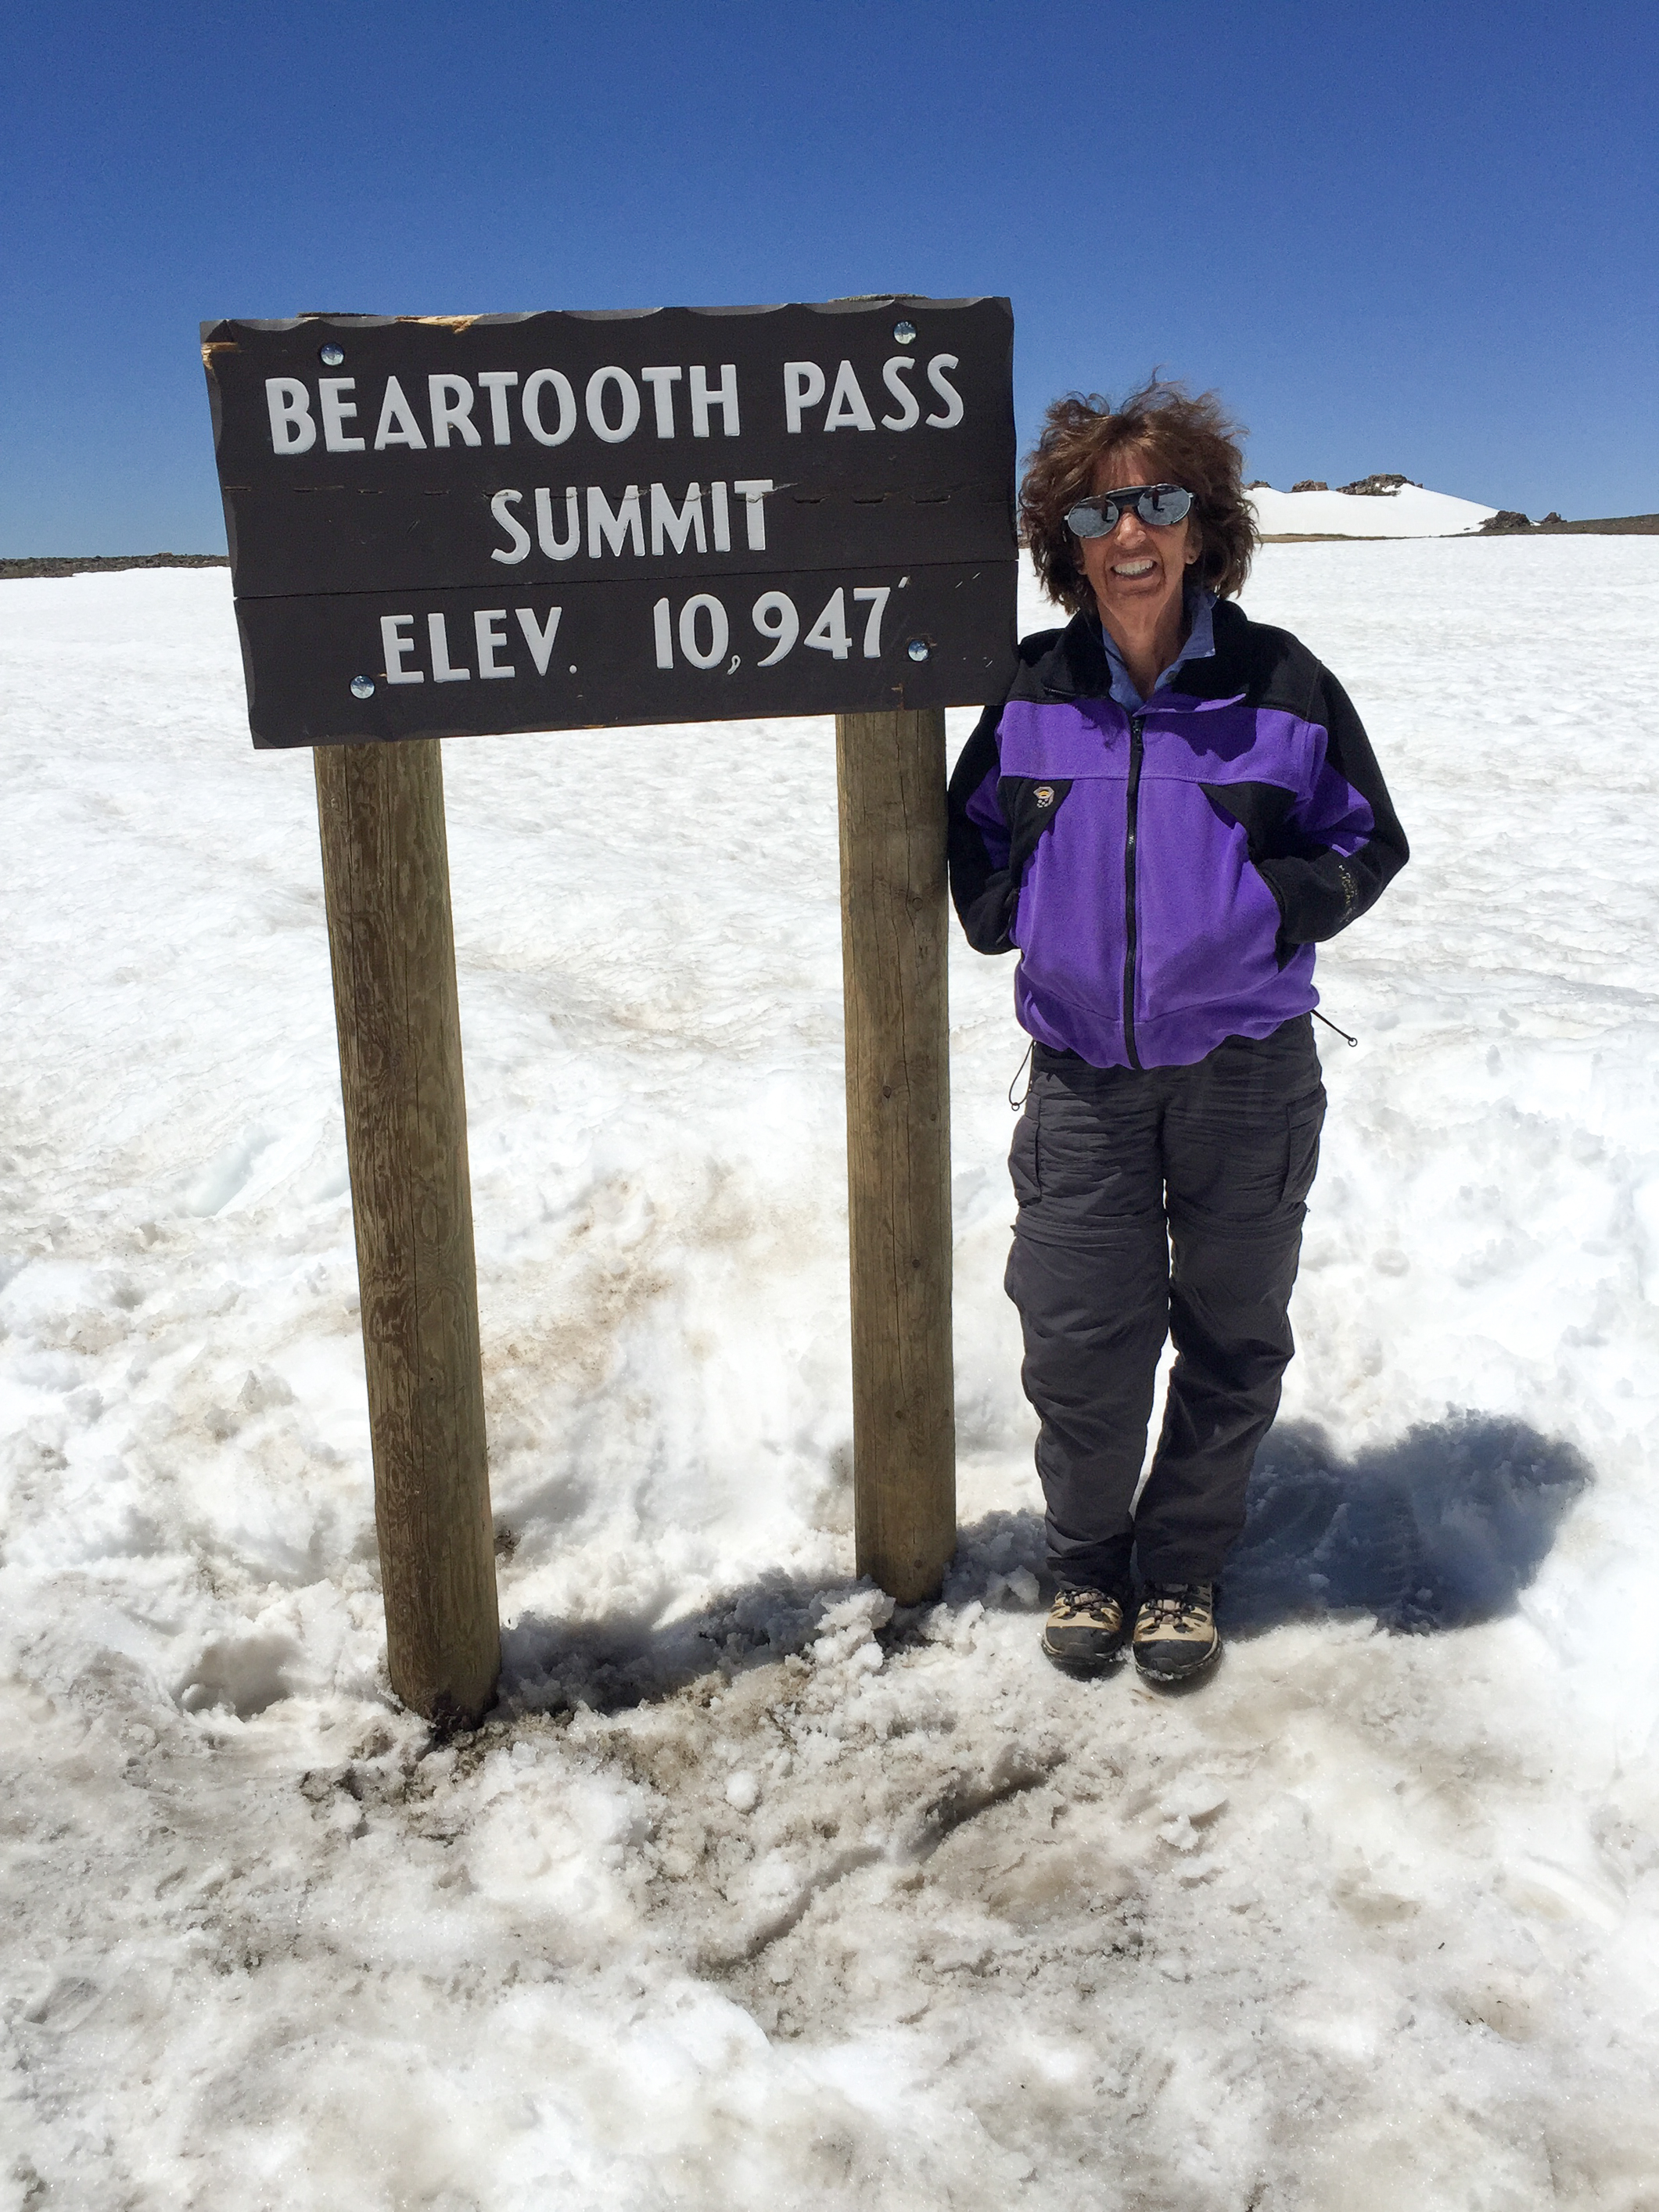 Do you think it's cold and windy on Beartooth Pass in June?